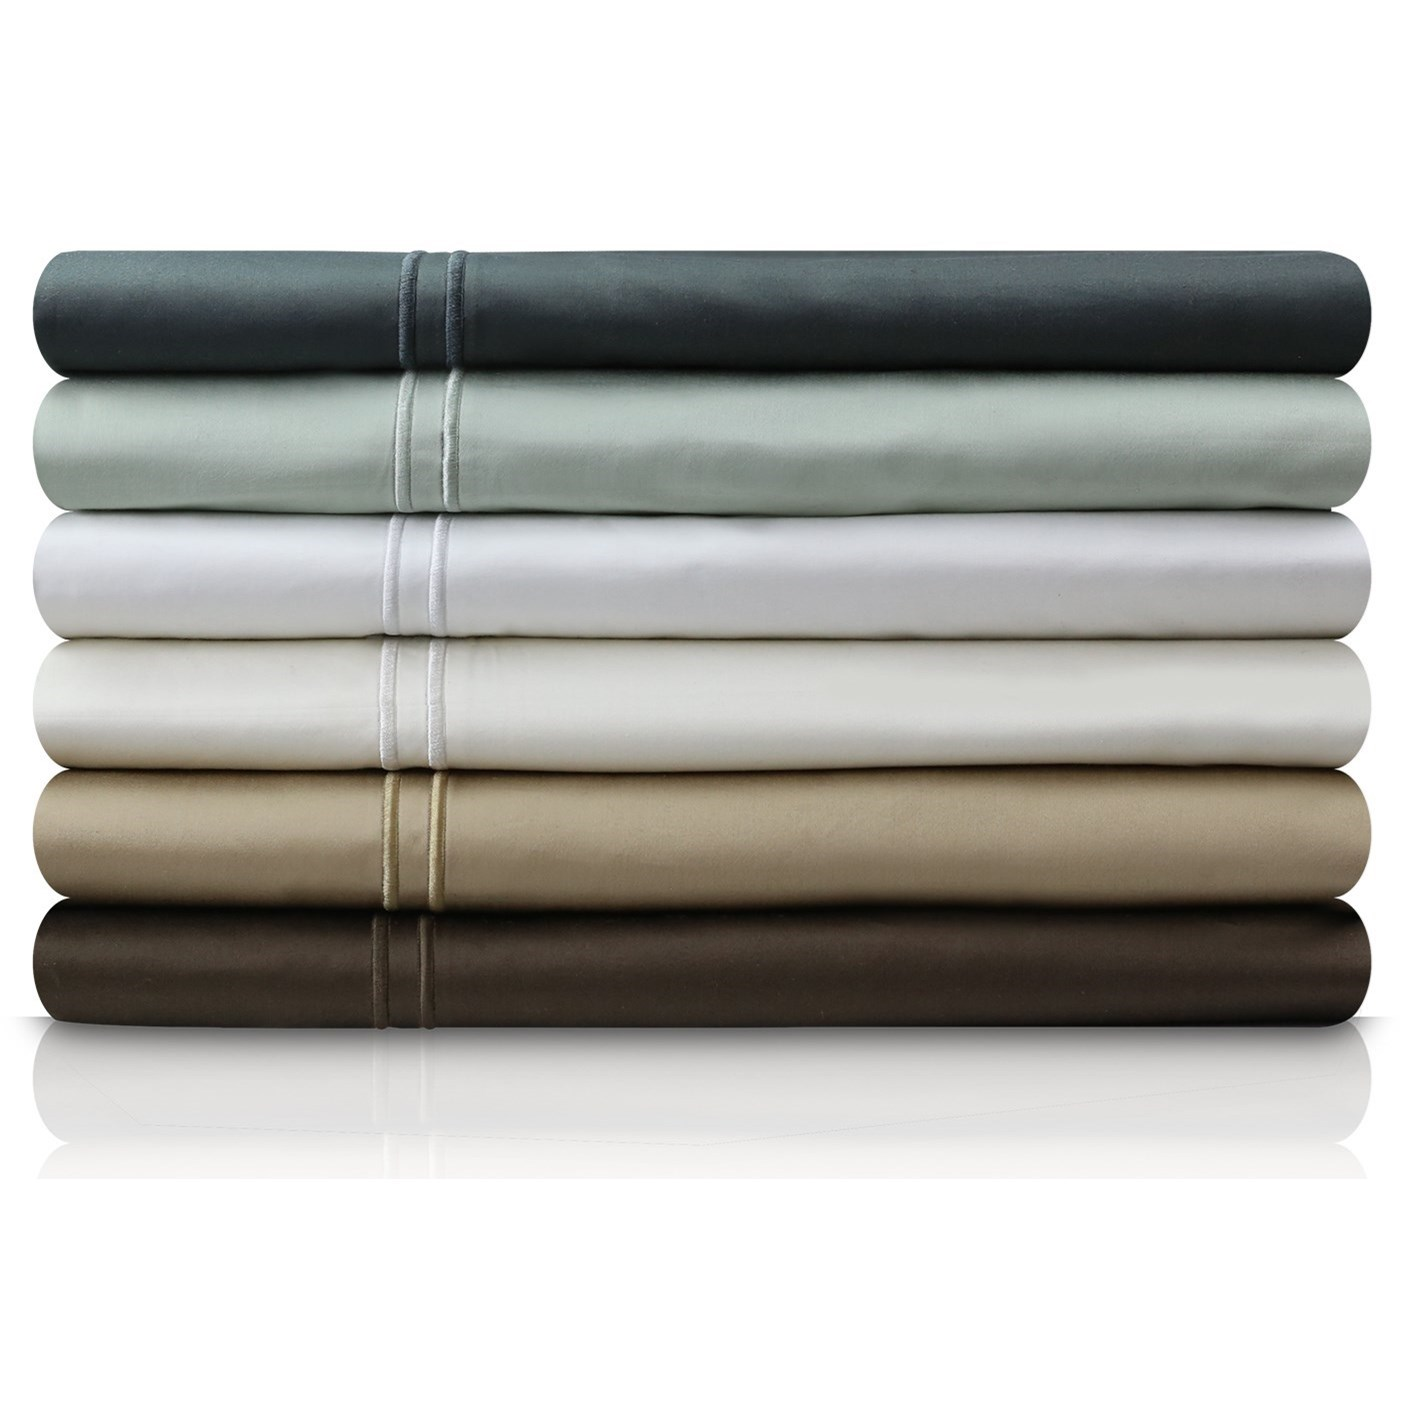 Malouf Egyptian Cotton Queen 600 TC Egyptian Cotton Pillowcases  - Item Number: MA06QQIVPC